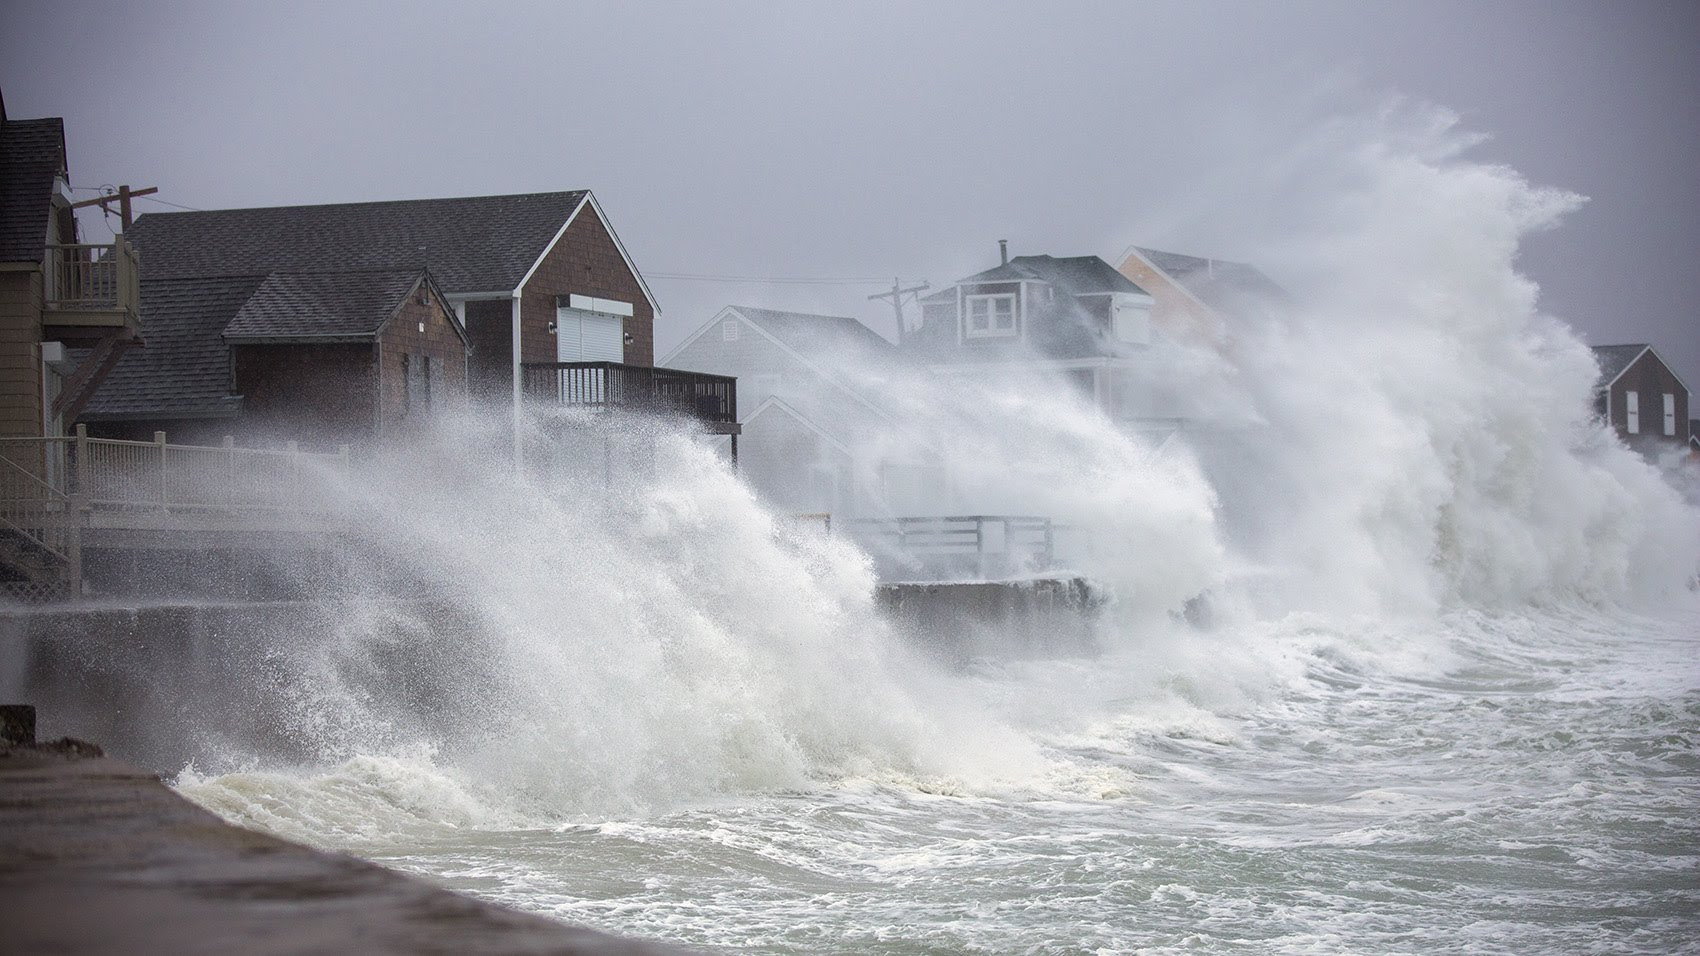 Houses along Lighthouse Road in Scituate are engulfed by waves crashing off the seawall. (Jesse Costa/WBUR)